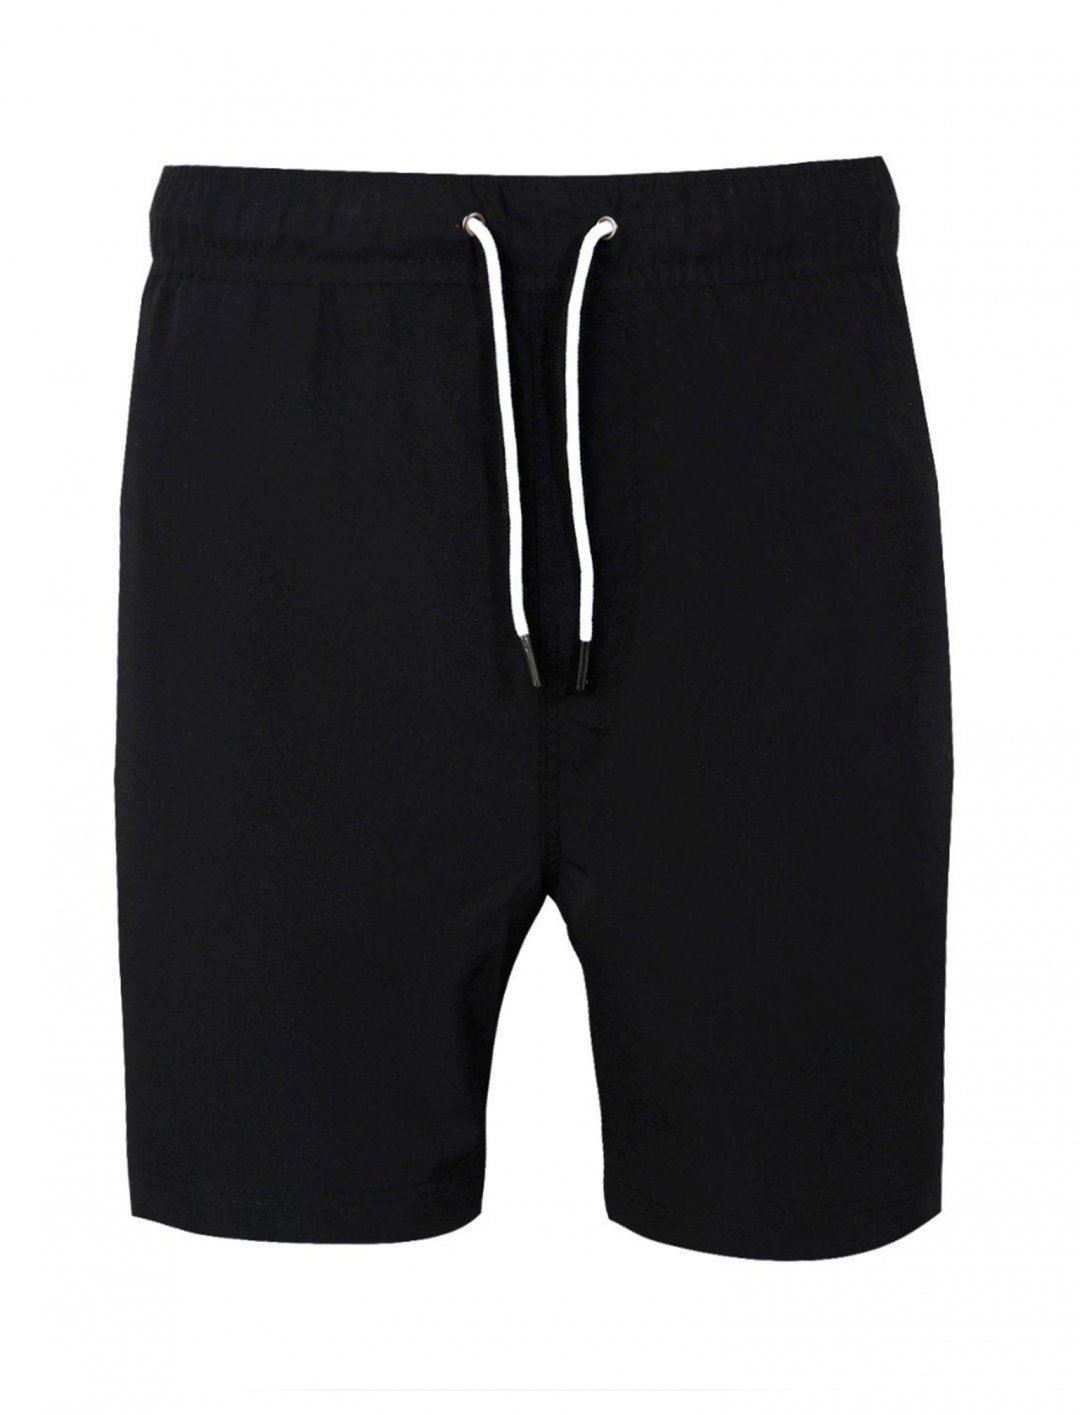 "Boohoo Swim Short {""id"":5,""product_section_id"":1,""name"":""Clothing"",""order"":5} Boohoo"